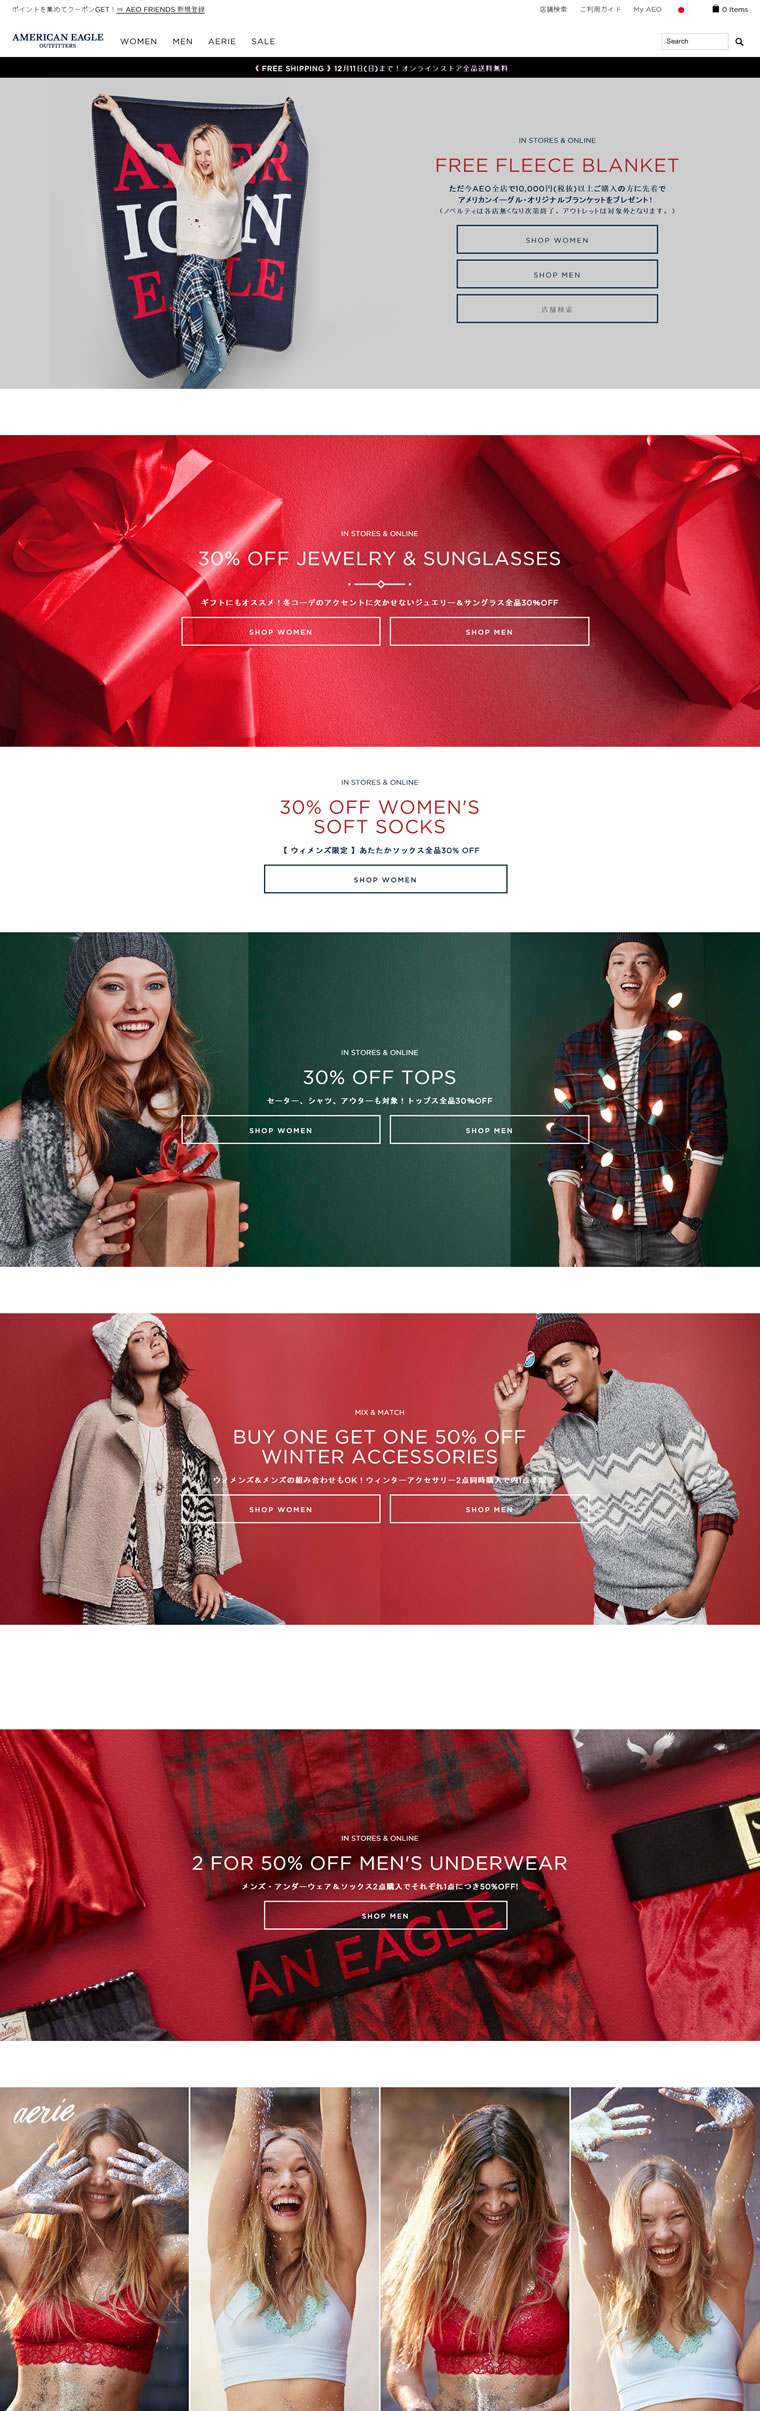 American Eagle Outfitters JP